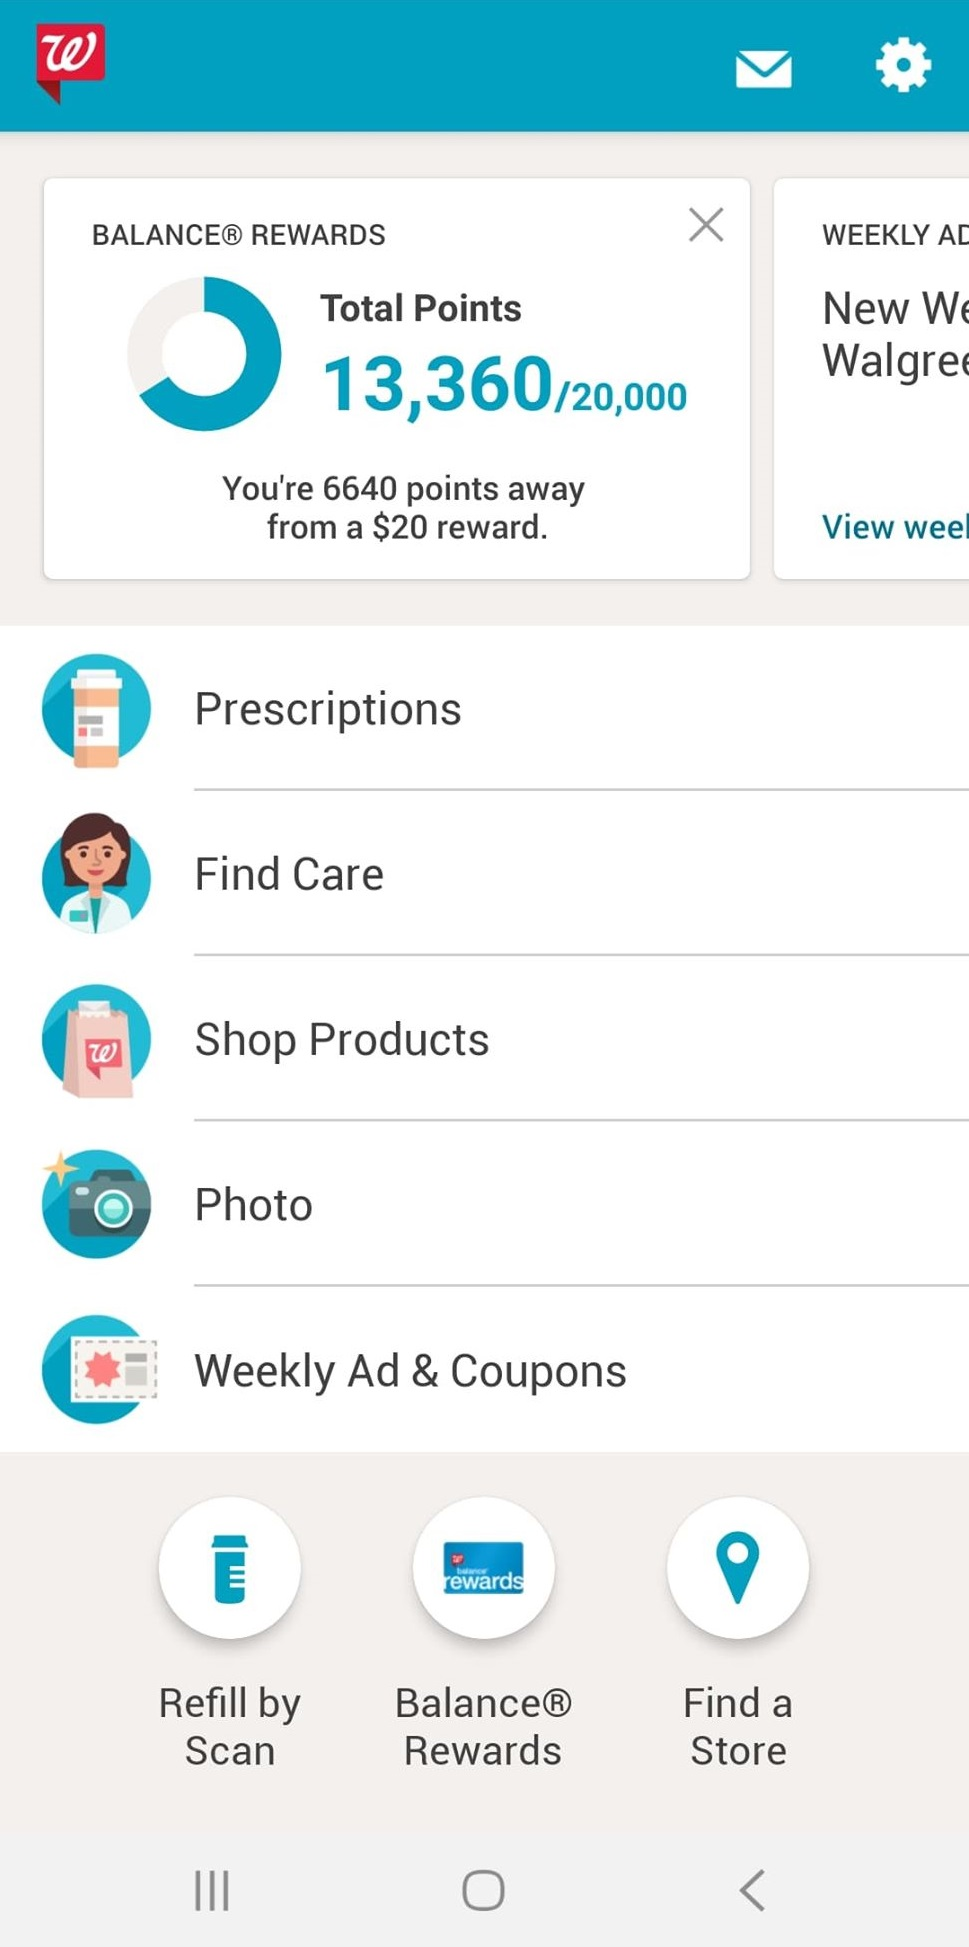 Walgreens uses its mobile app to increase customer engagement